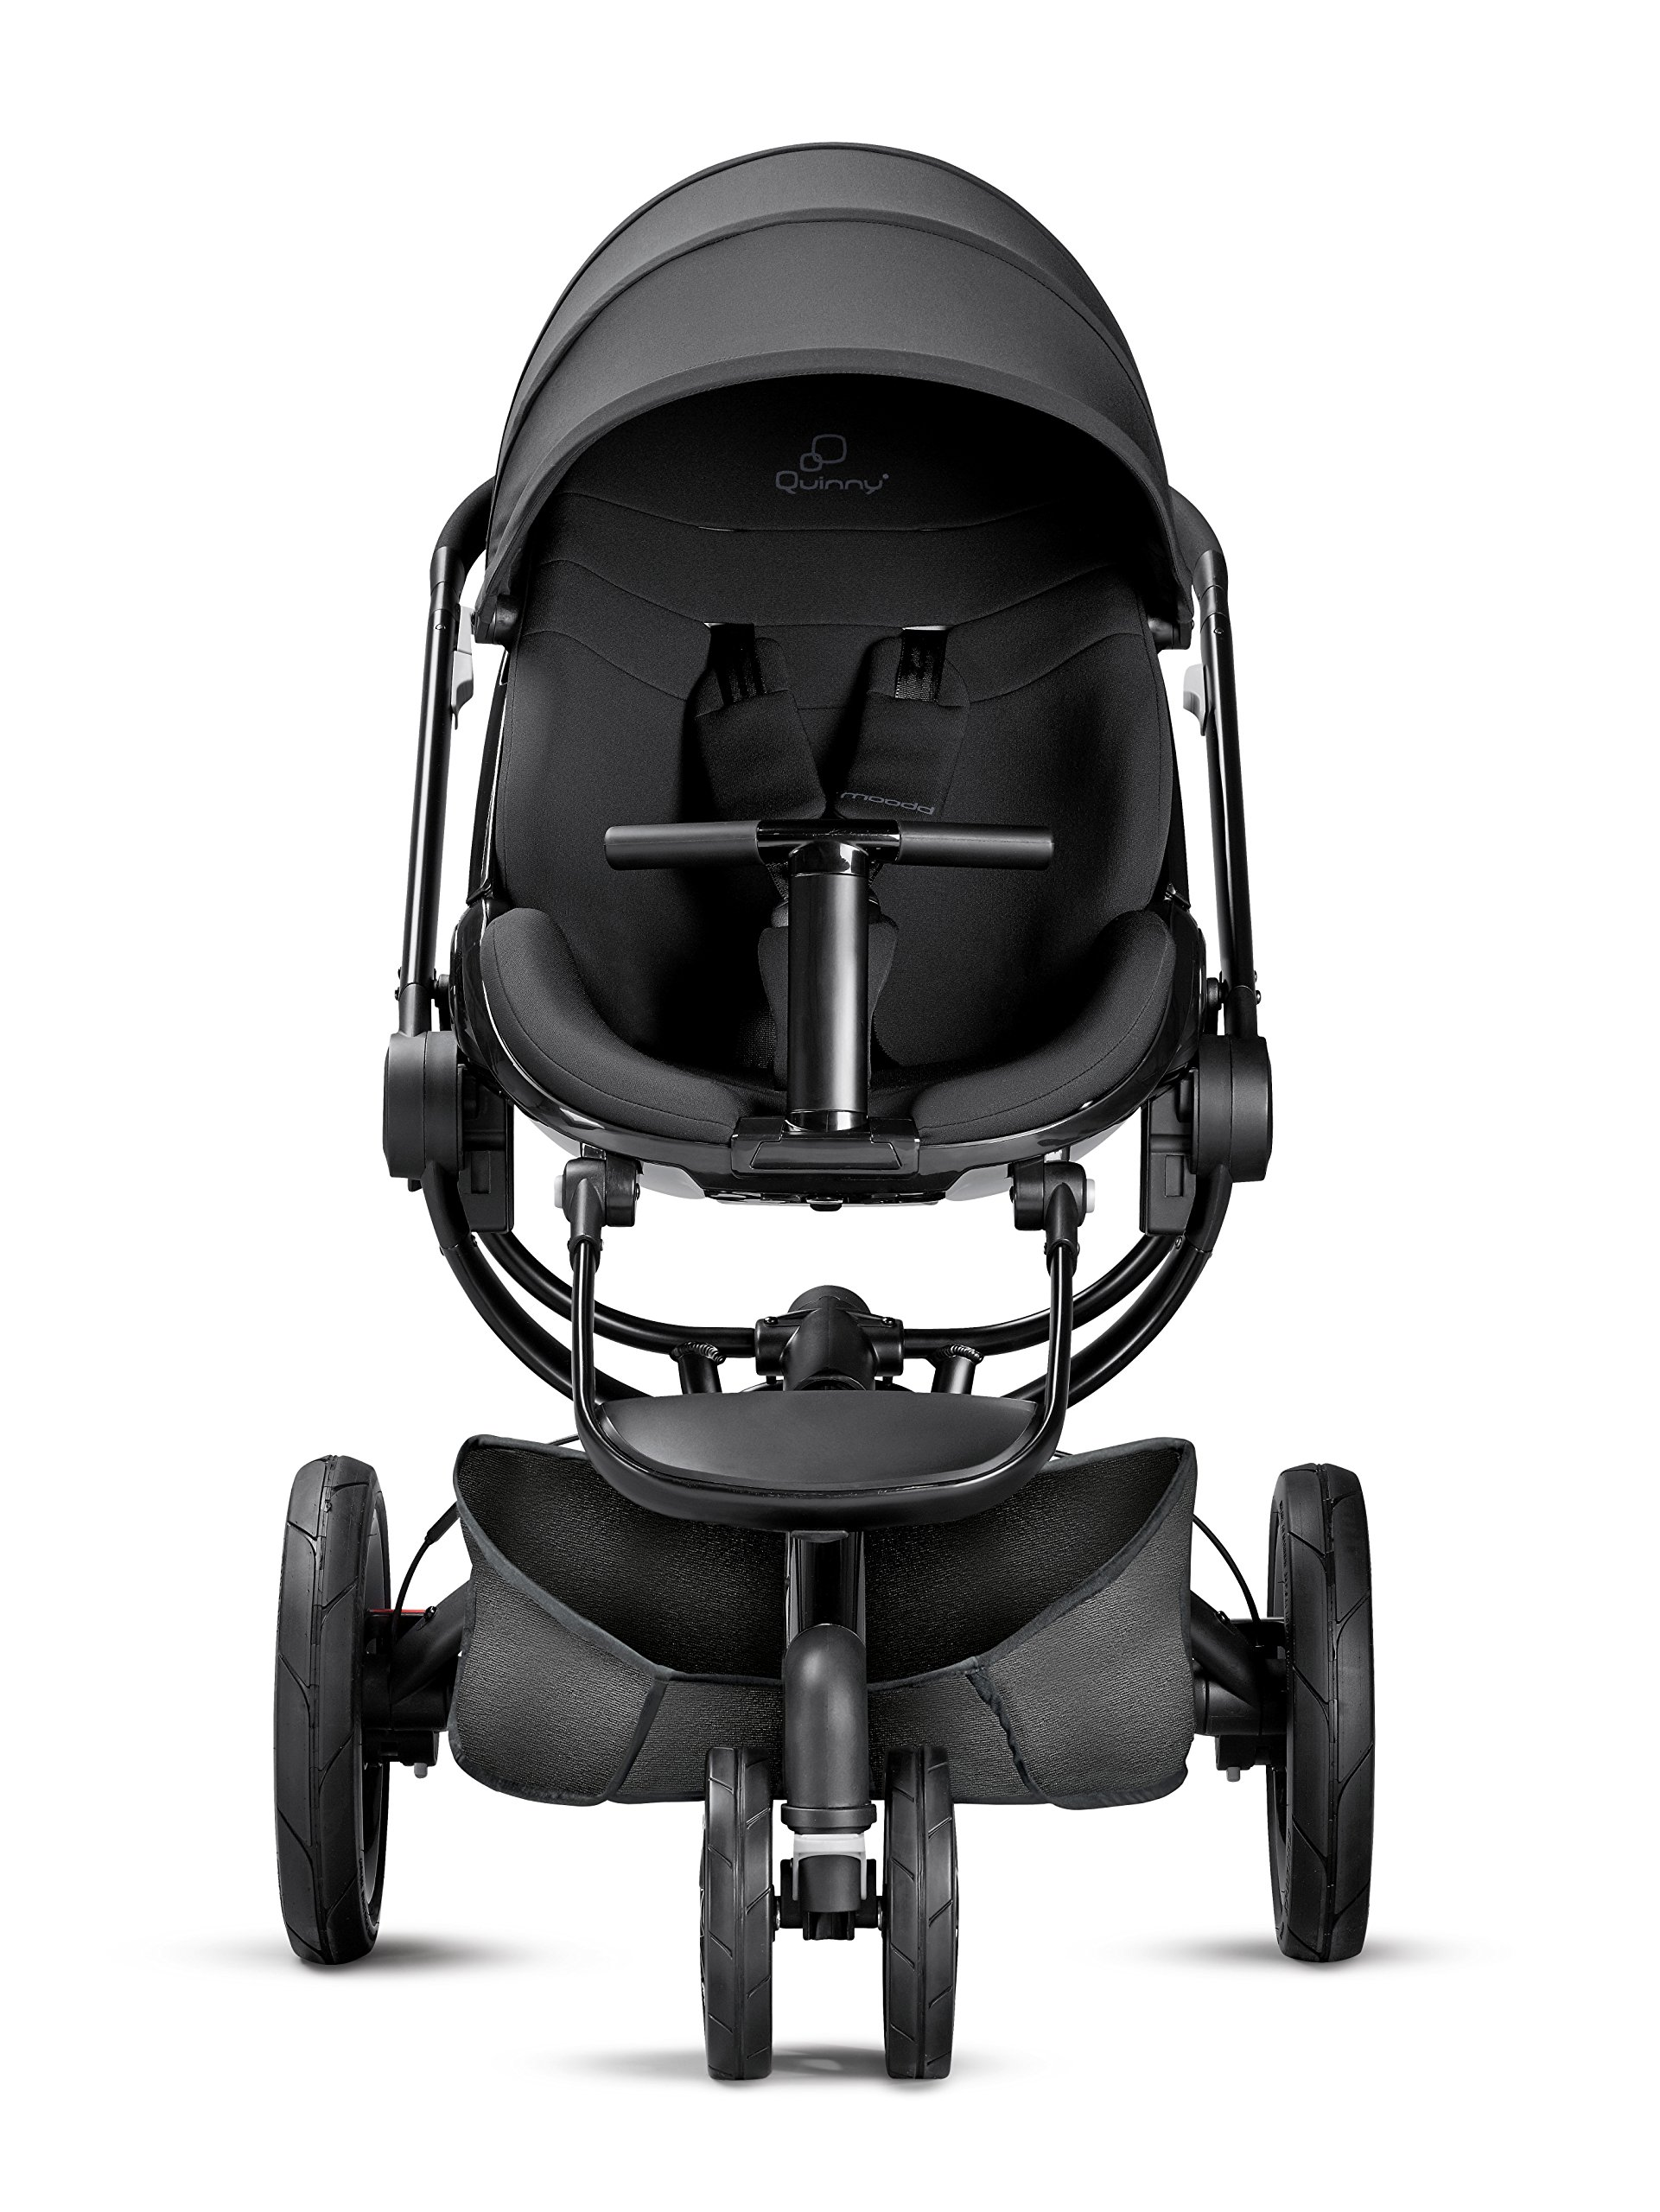 Quinny Moodd Pushchair Frame, Black Devotion Maxi-Cosi Stylish urban pushchair with cozy baby nest - suitable from birth to 15 kg (approx. 3.5 years) Foam filled comfort tyres and lockable front swivel wheels for a smooth ride Reversible seat unit with 3 recline position (including lie-flat options for newborns) 2